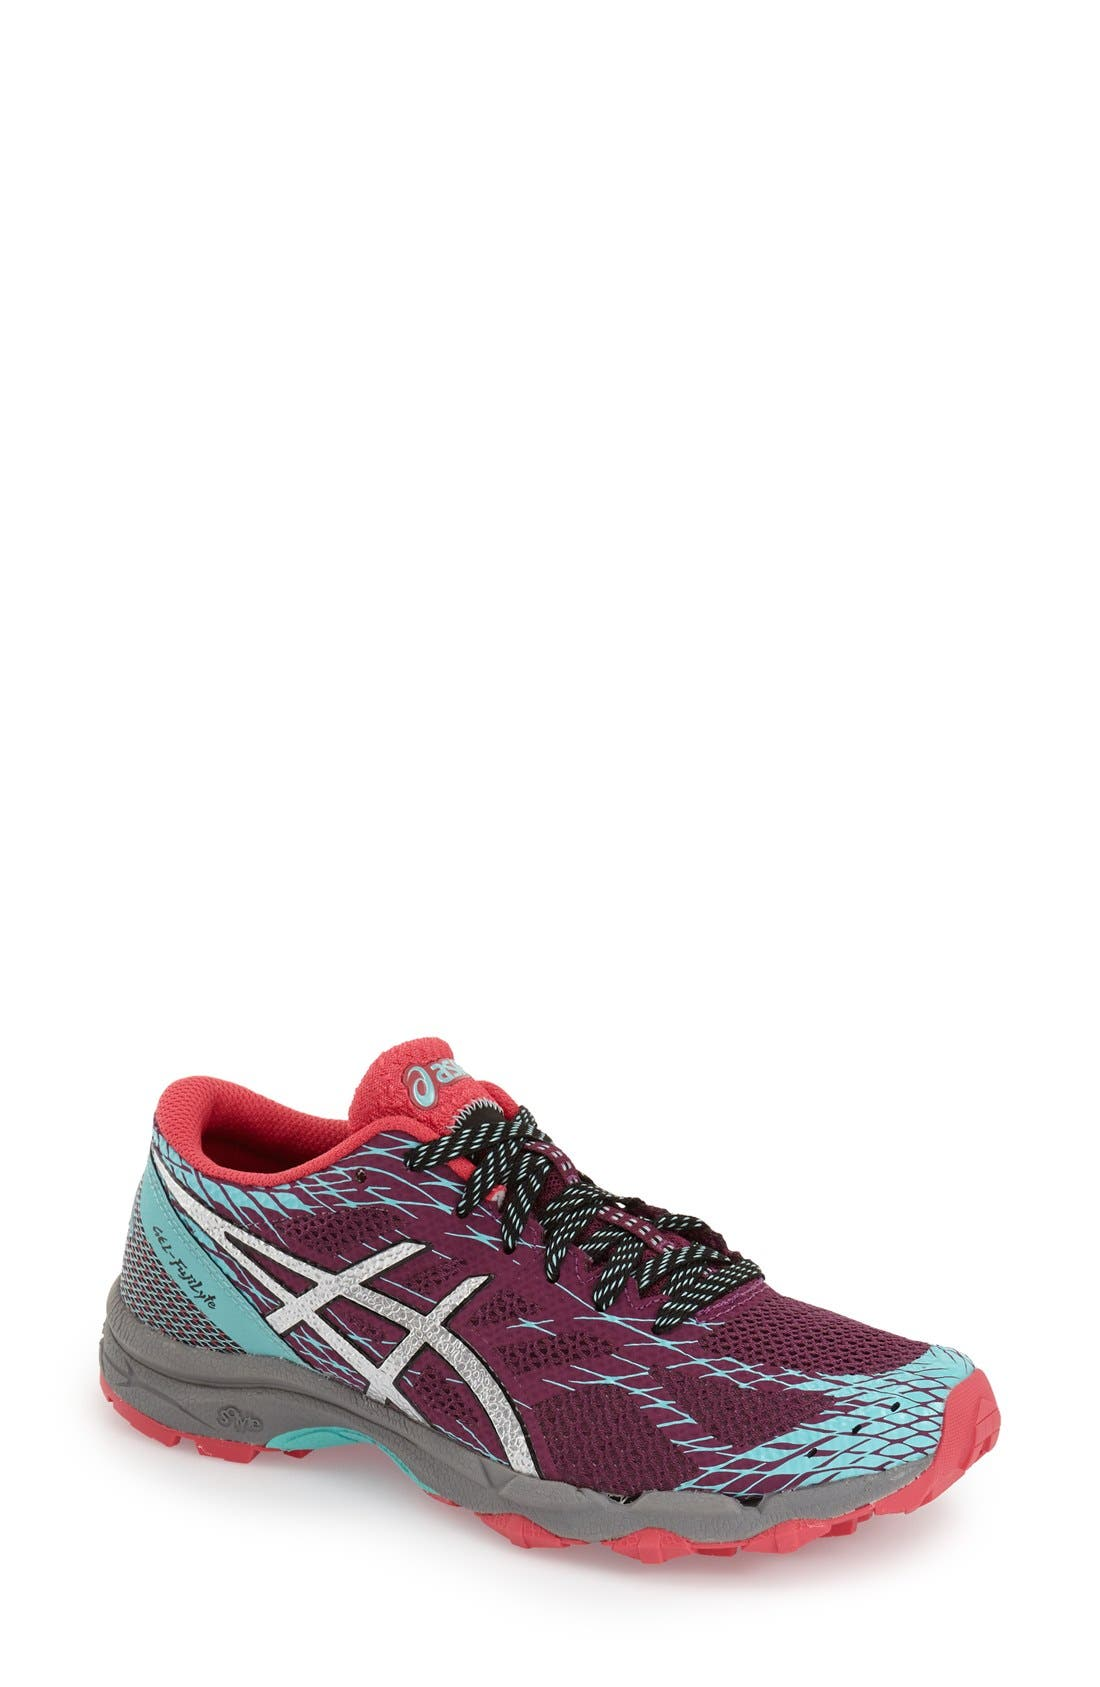 Alternate Image 1 Selected - ASICS® 'GEL-Fuji Lyte' Running Shoe (Women)